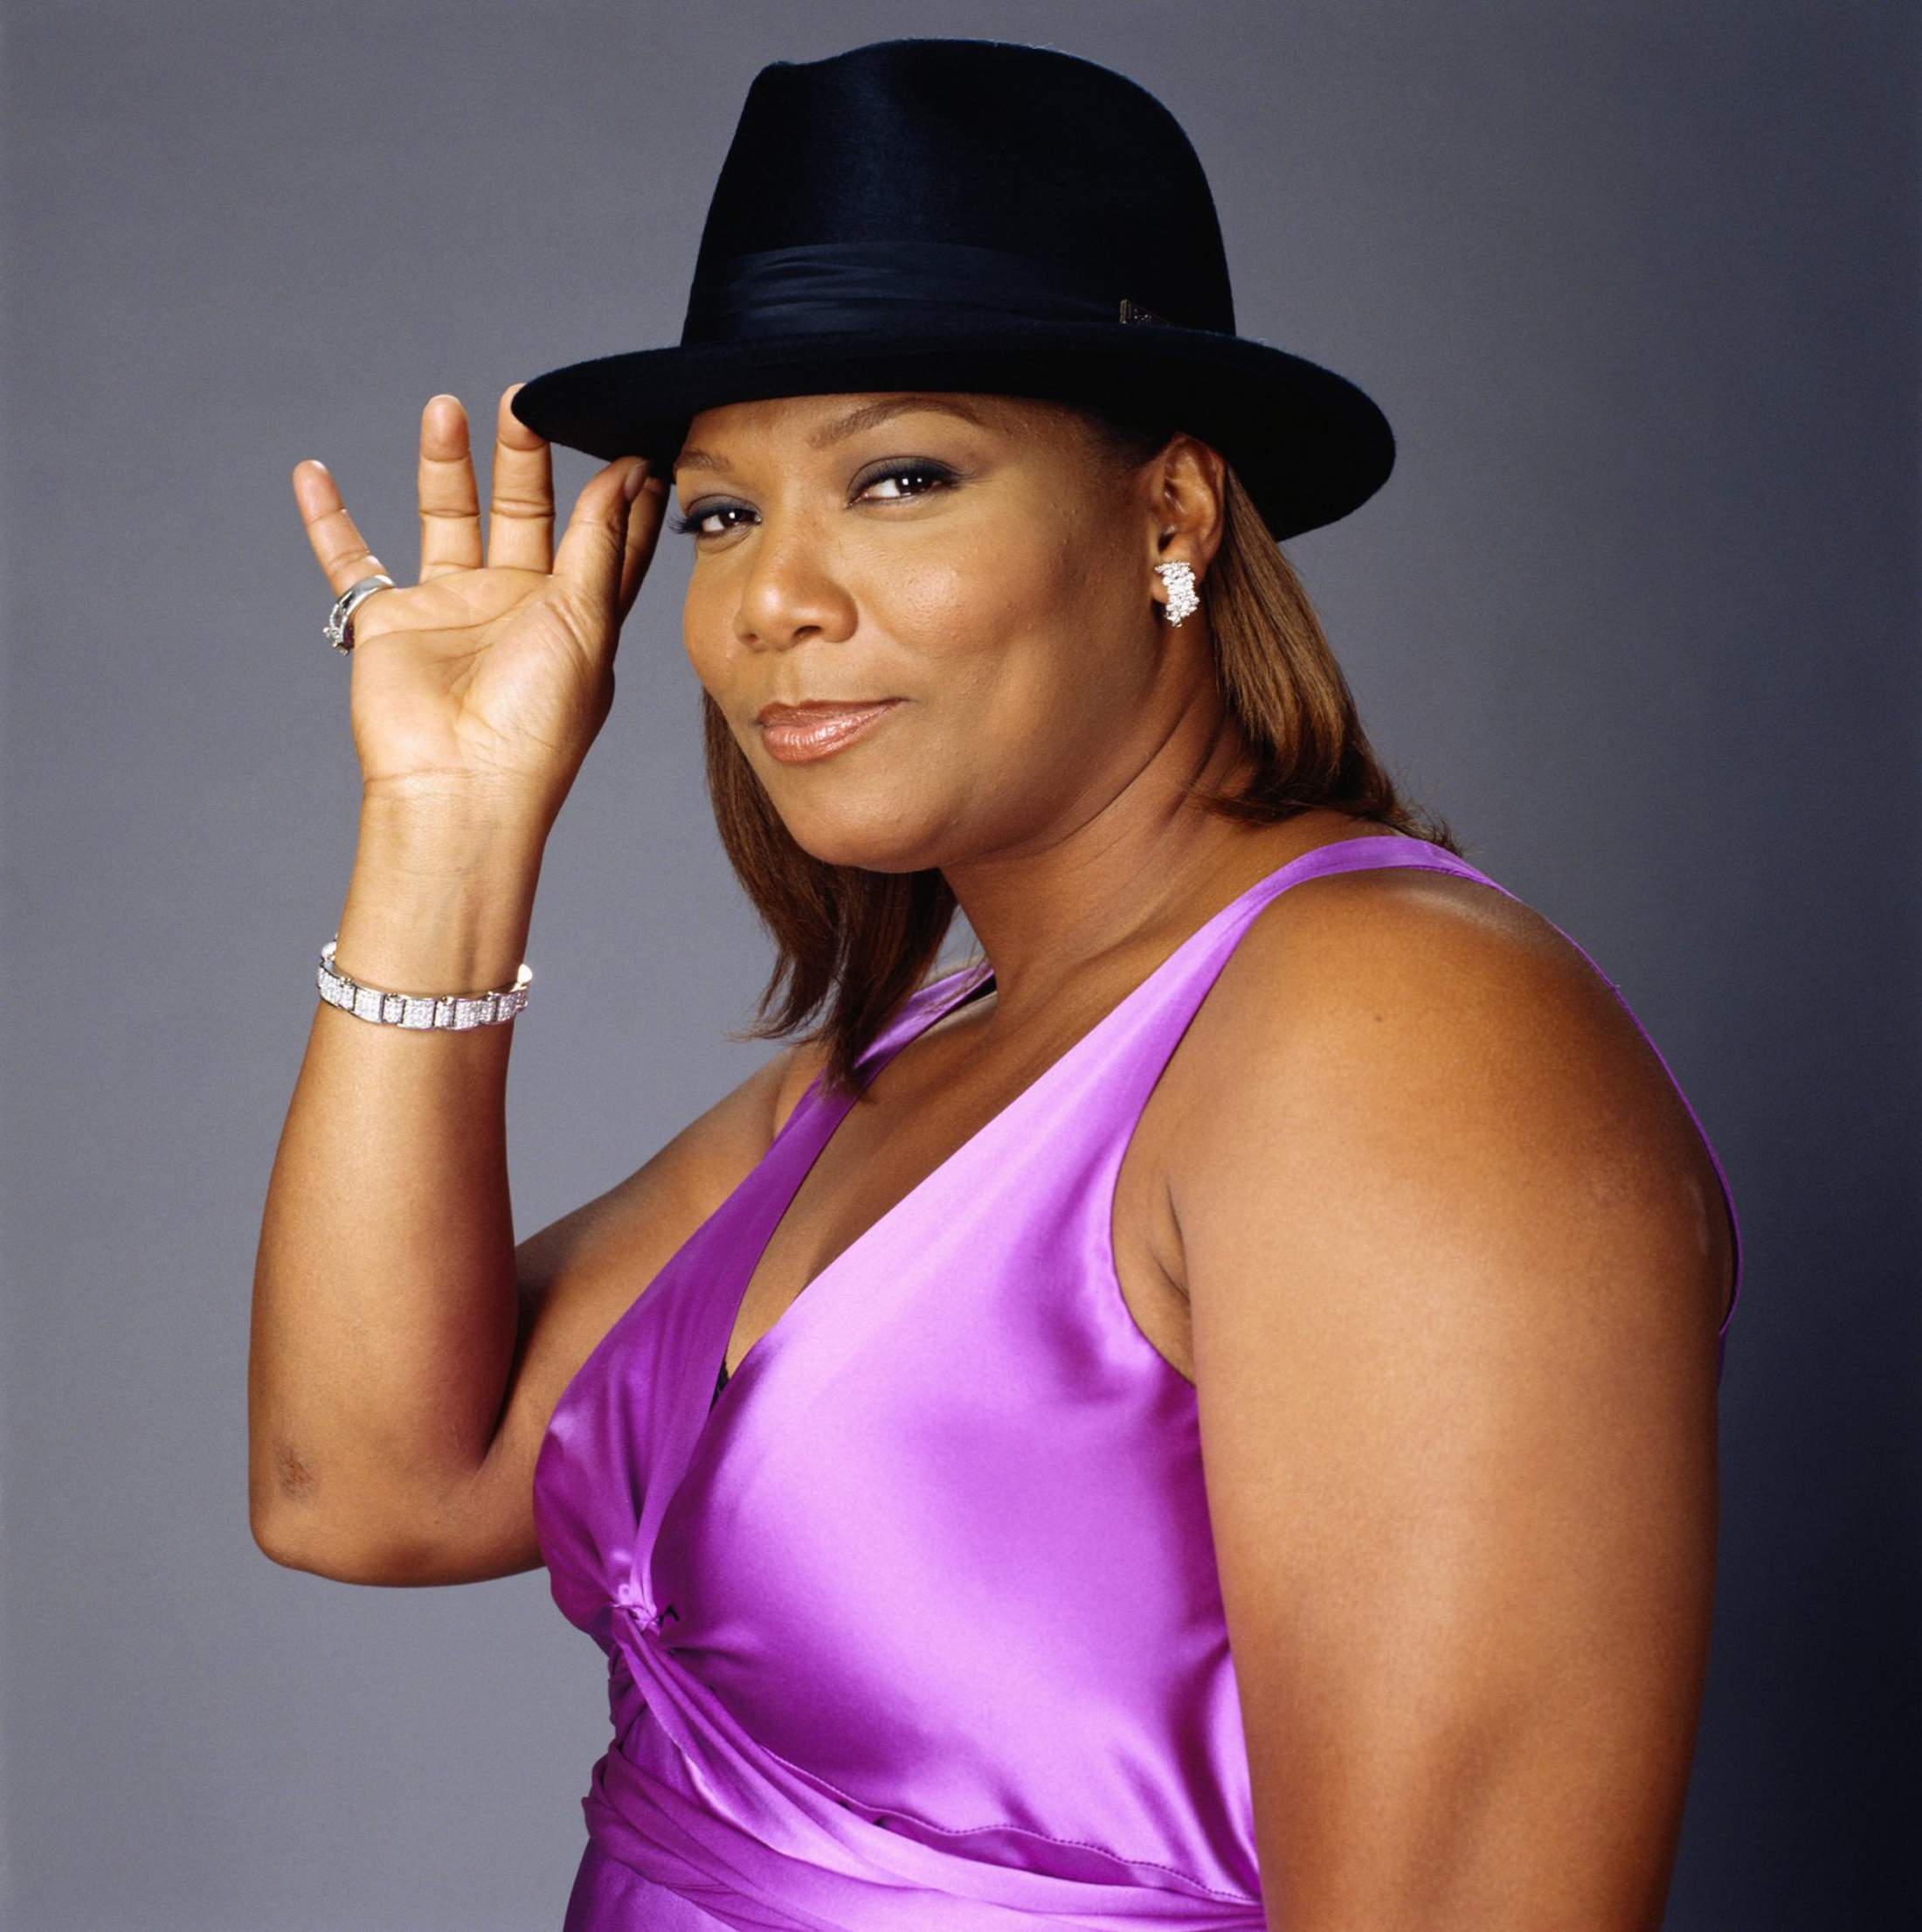 queen latifah фото